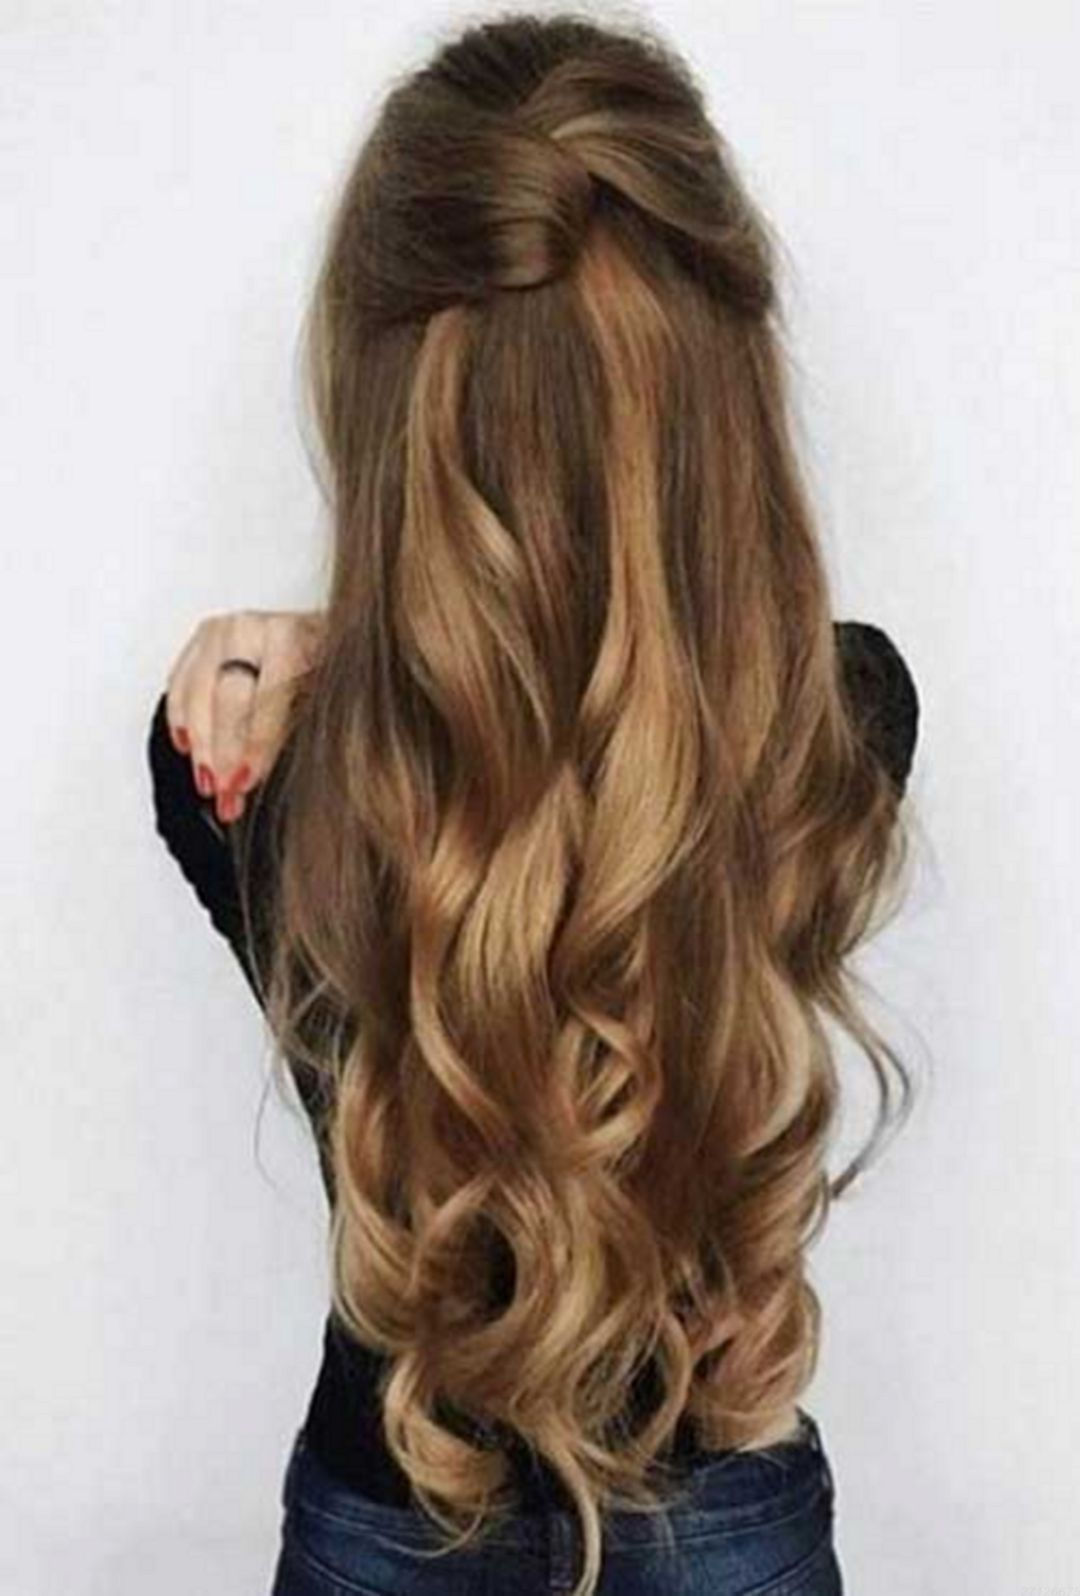 Long Hair Styles In Search Of Some Ideas For Lengthy Hair The Finest And Easiest Hairstyles Peinados Para Cabello Largo Peinados Poco Cabello Cabello Largo